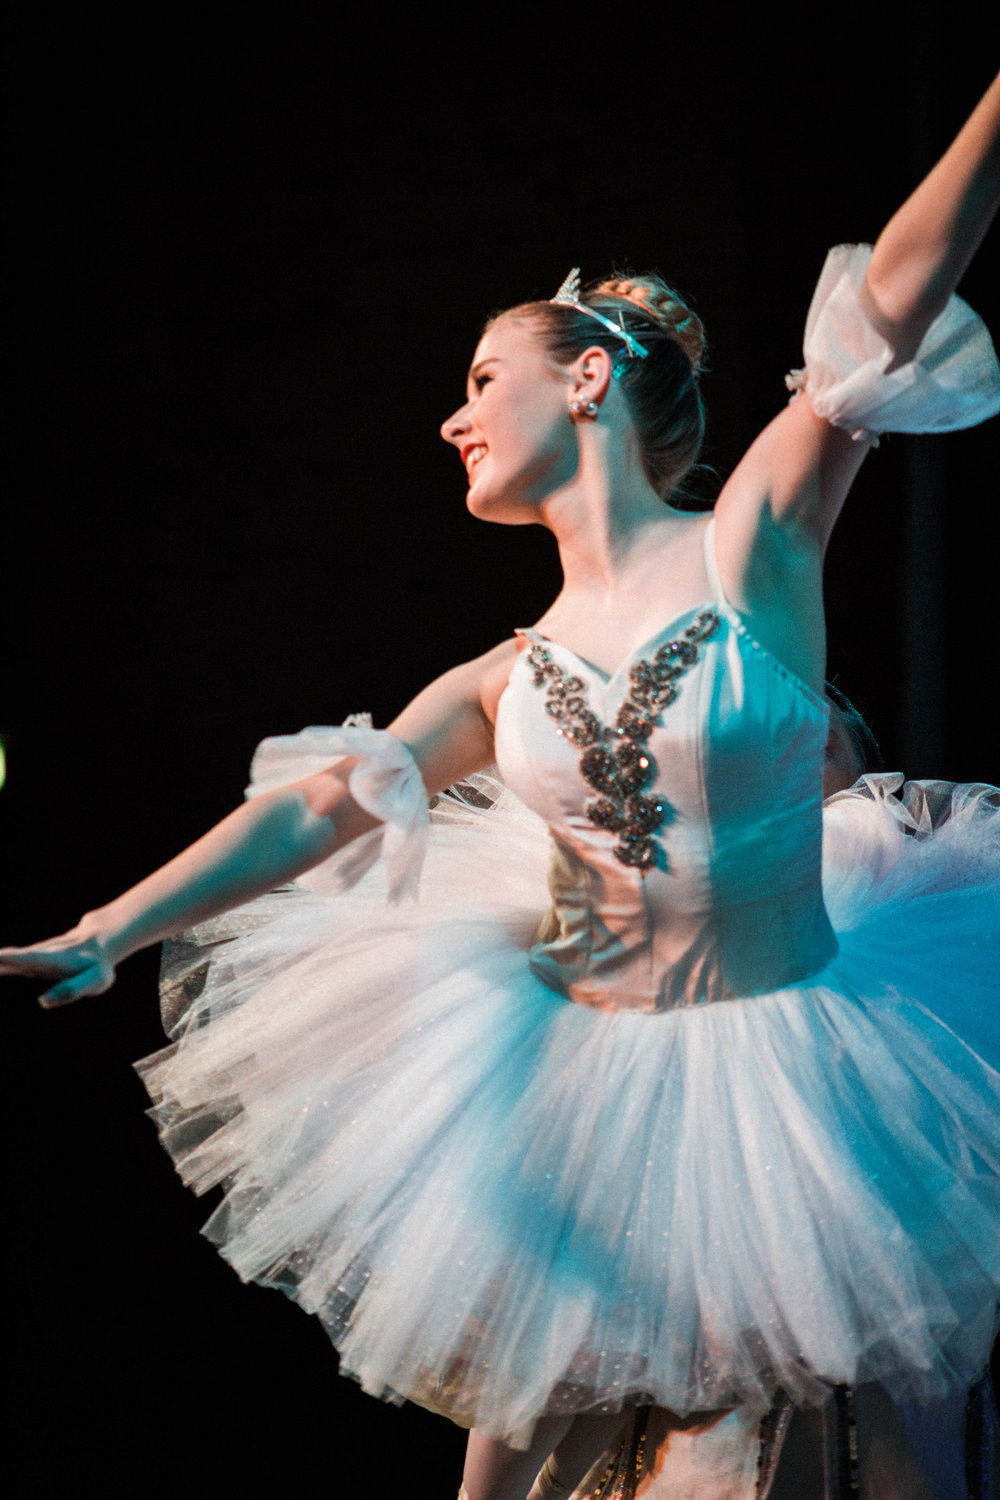 nutcracker17 (8 of 53).jpg